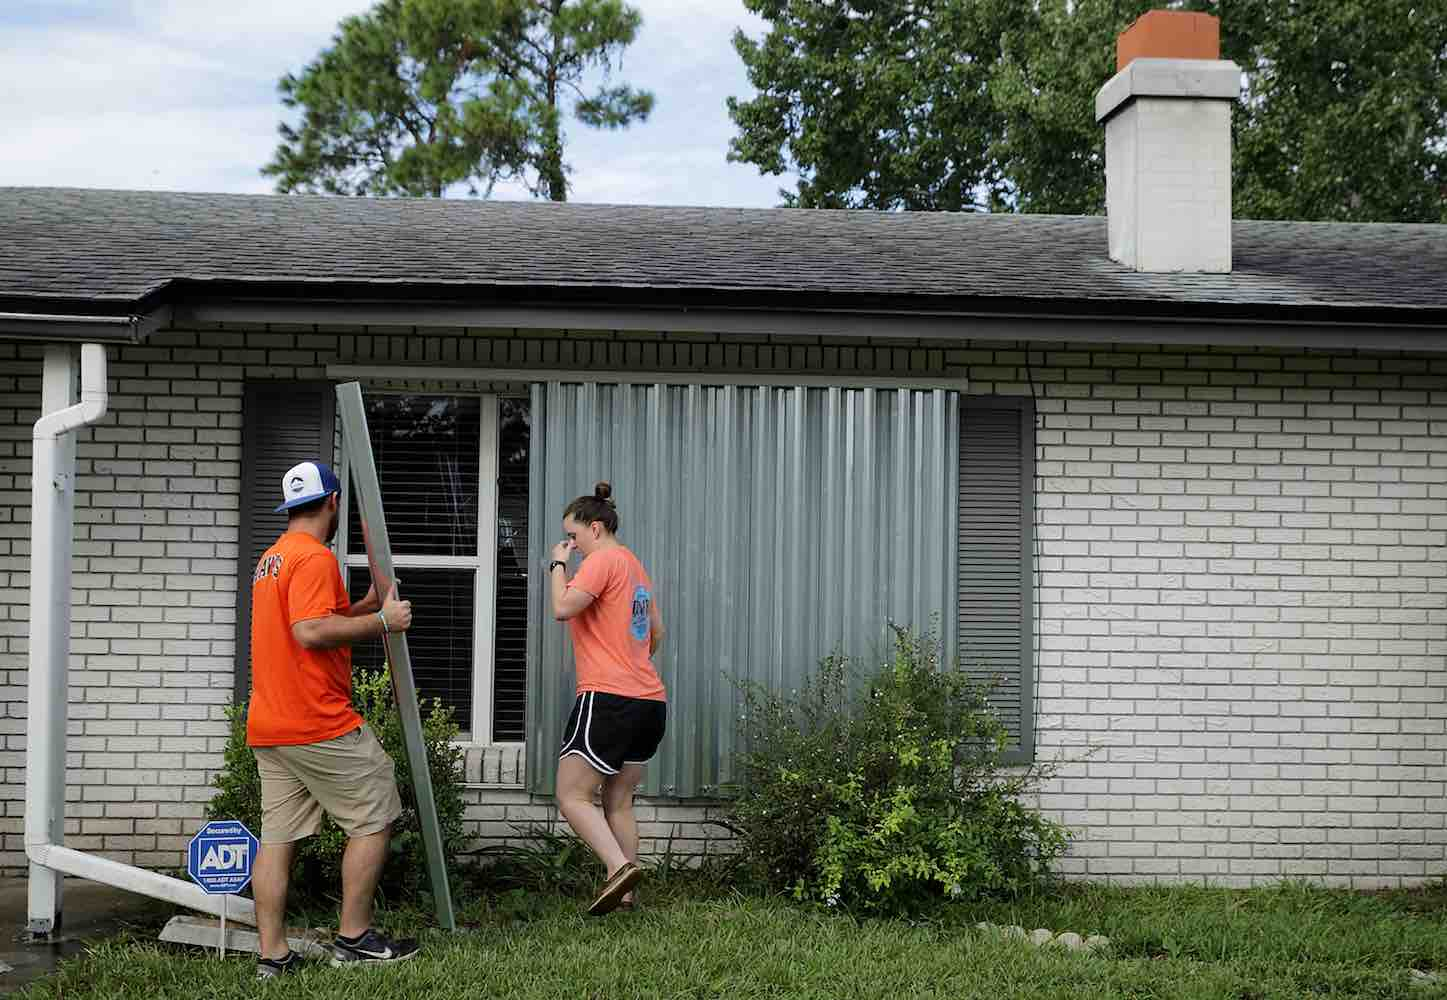 "<div class=""meta image-caption""><div class=""origin-logo origin-image kgo""><span>kgo</span></div><span class=""caption-text"">Caleb Rich and his wife Rachel Rich put metal shutters over windows on their home ahead of the arrival of Hurricane Irma September 9, 2017 in Daytona Beach, Florida.  (Chip Somodevilla/Getty)</span></div>"